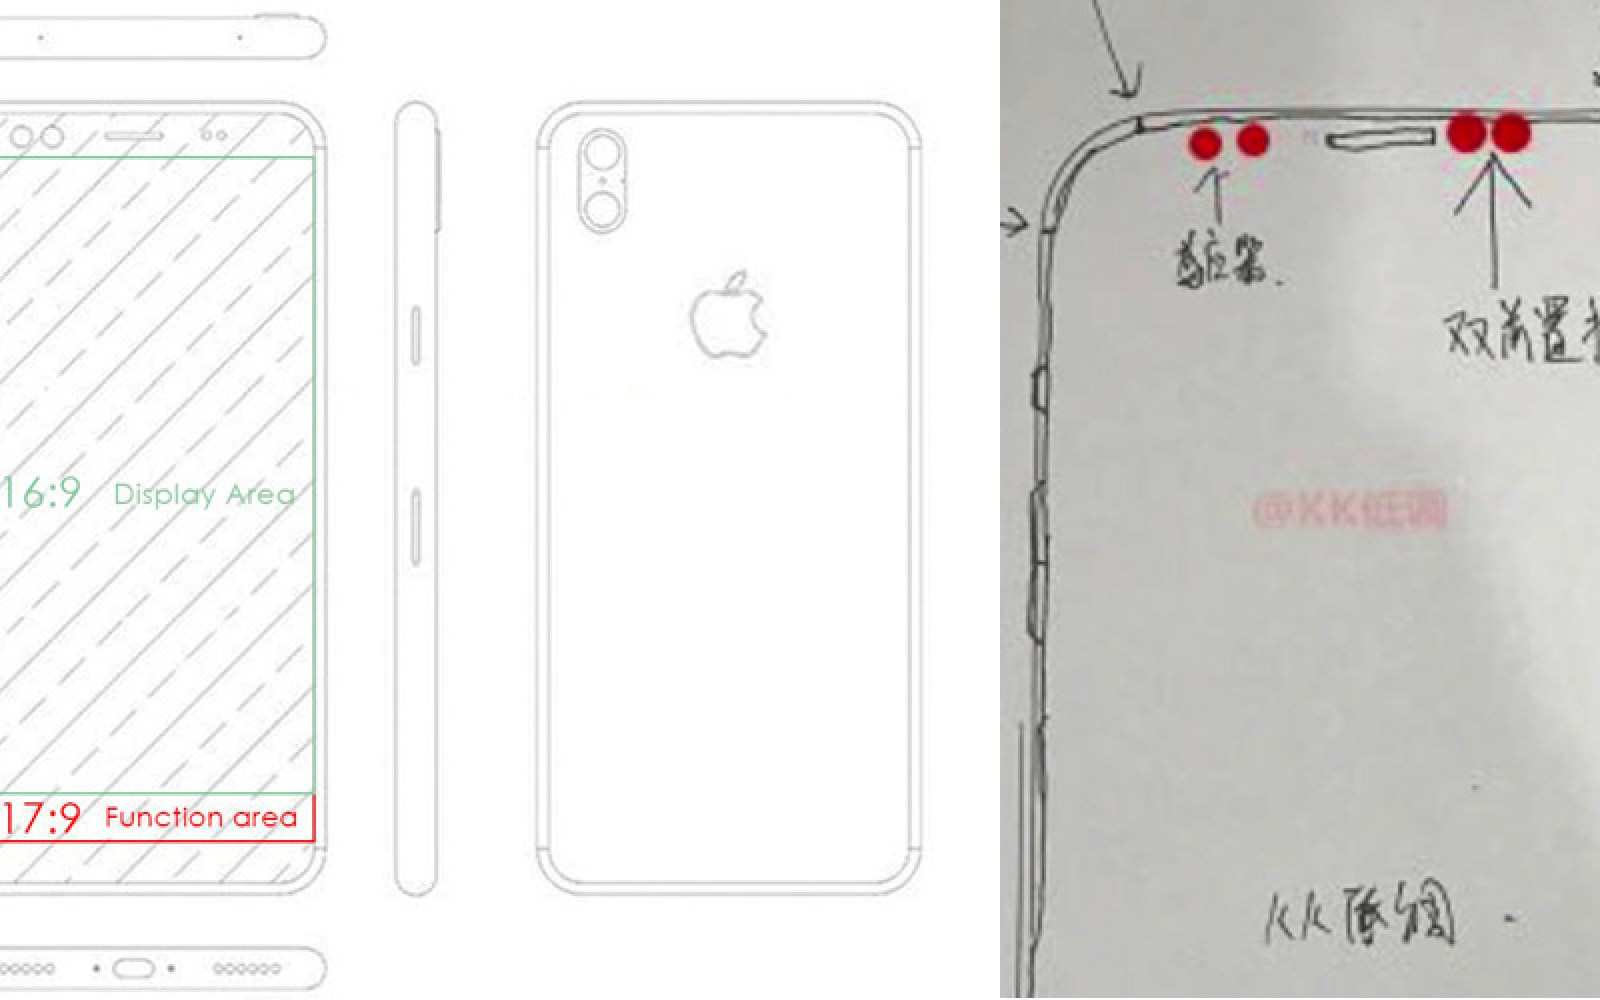 The sketchy story behind this iPhone 8 schematic going around …